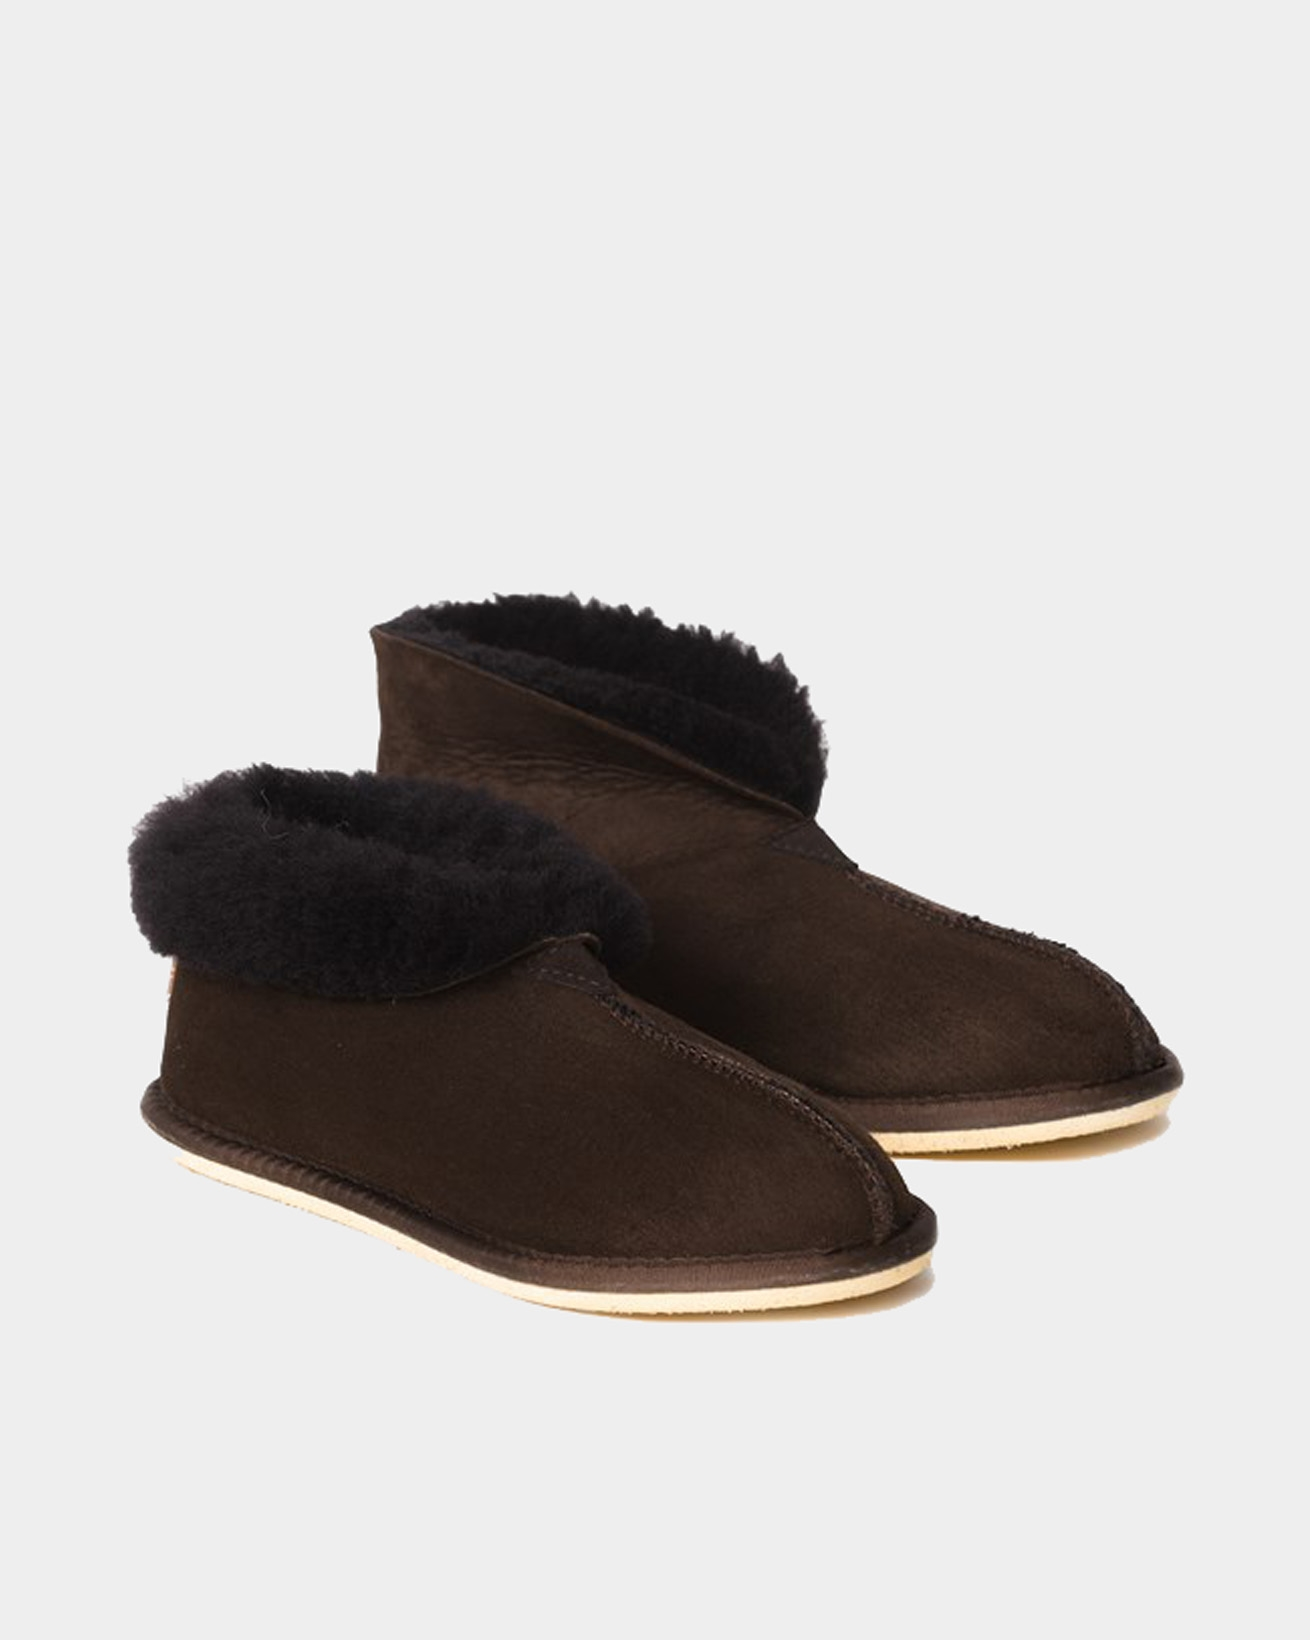 2100-ladies' sheepskin bootee slippers-mocca-1.jpg